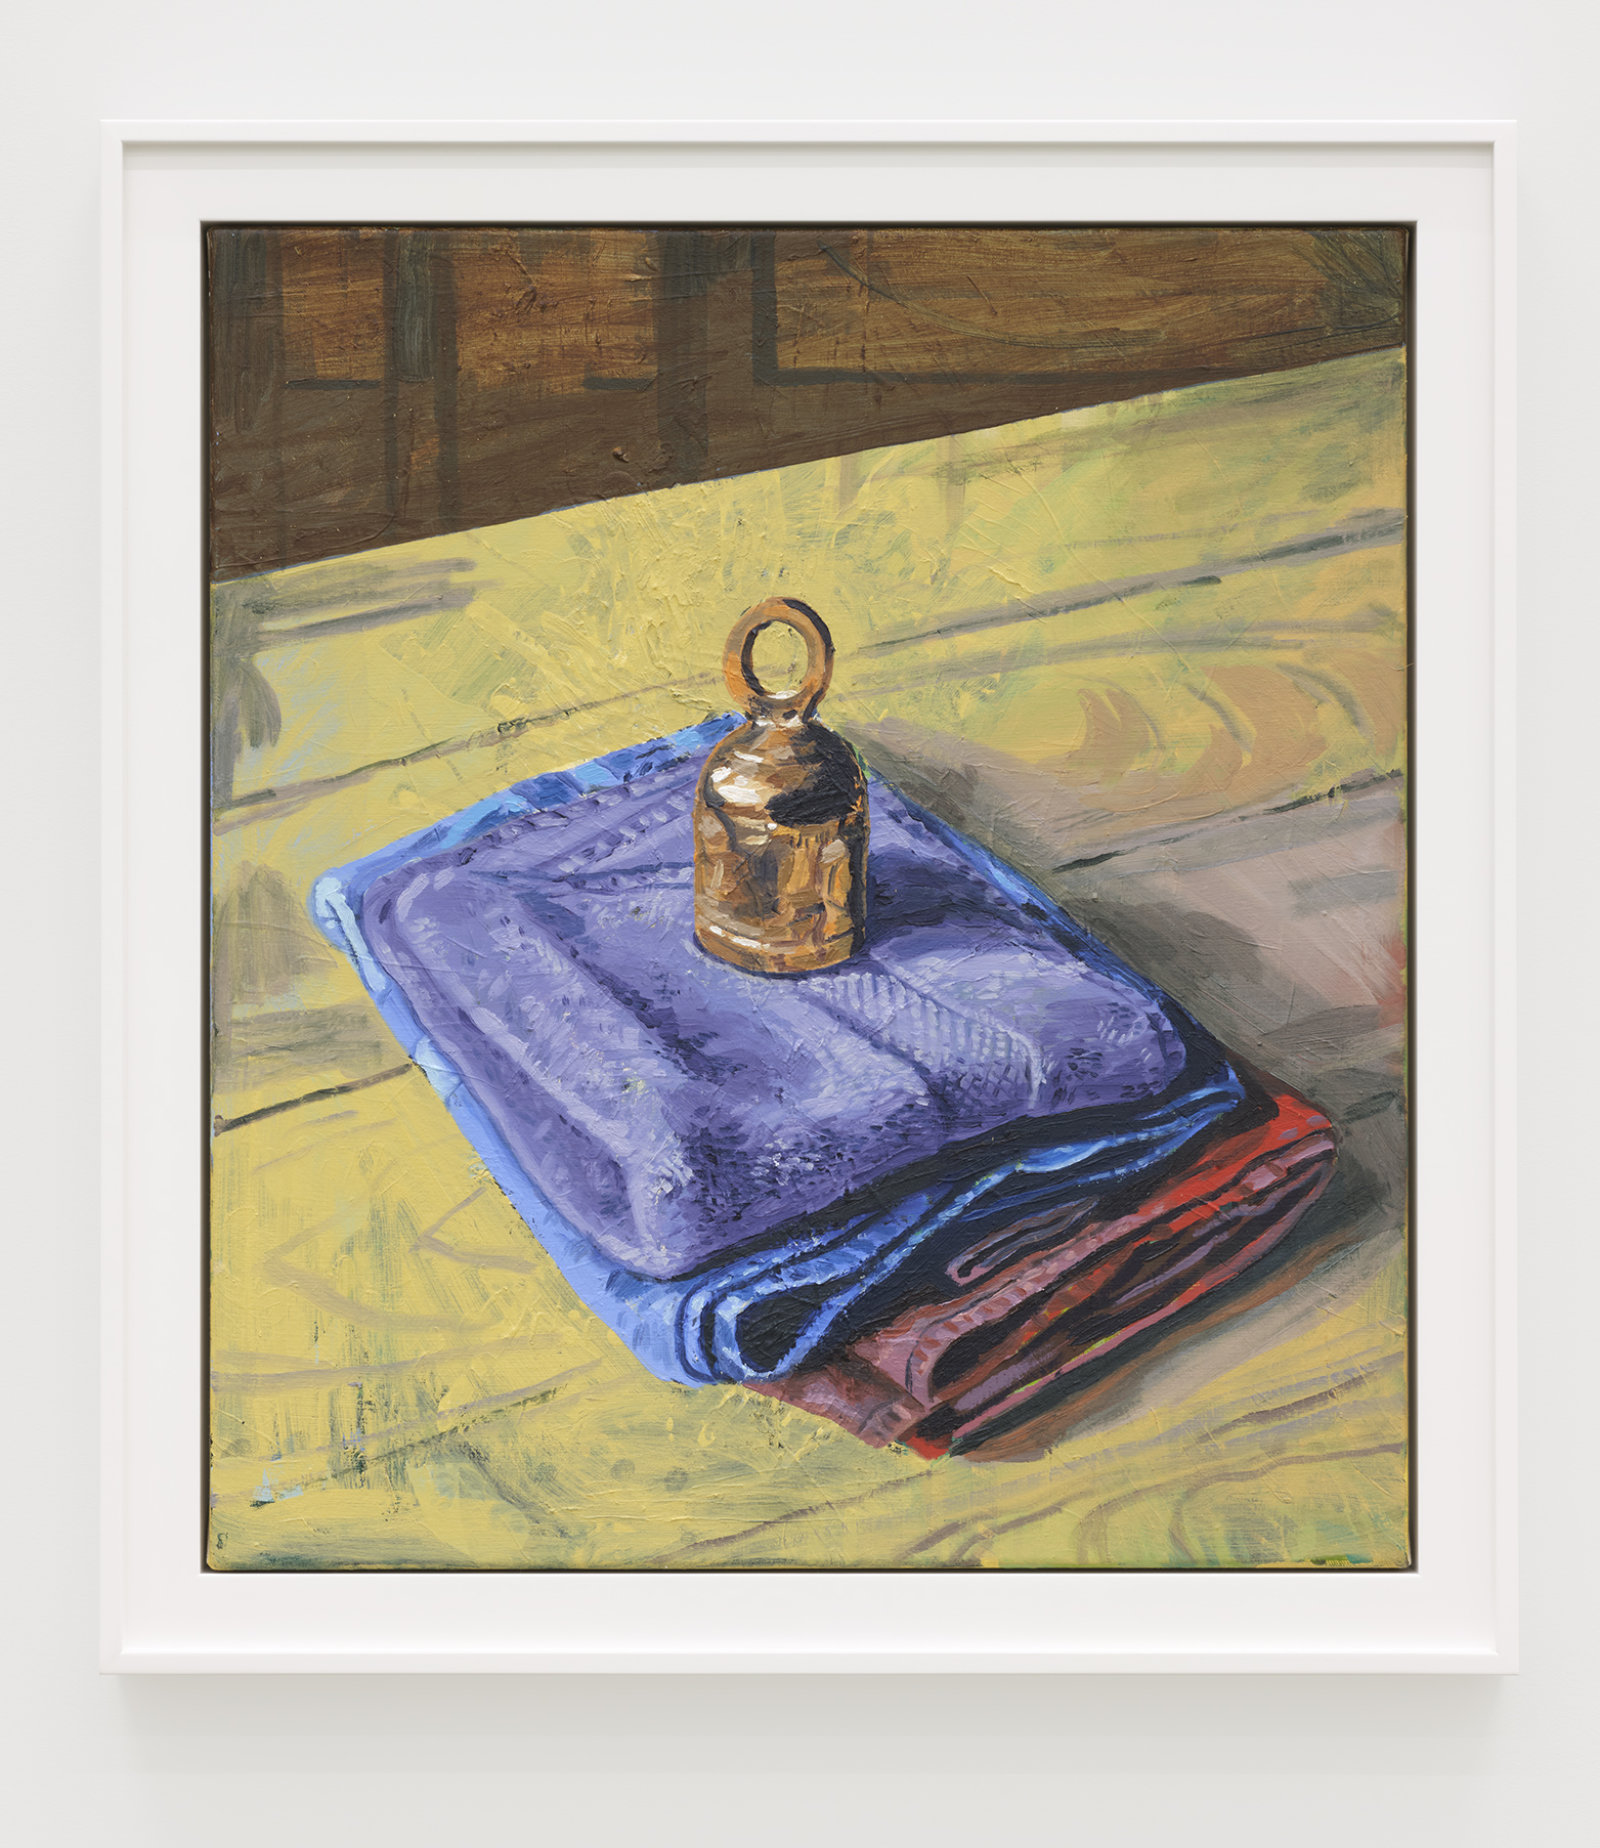 Damian Moppett, Bell and Towels, 2020, oil on canvas, 30 x 27 in. (76 x 69 cm) by Damian Moppett